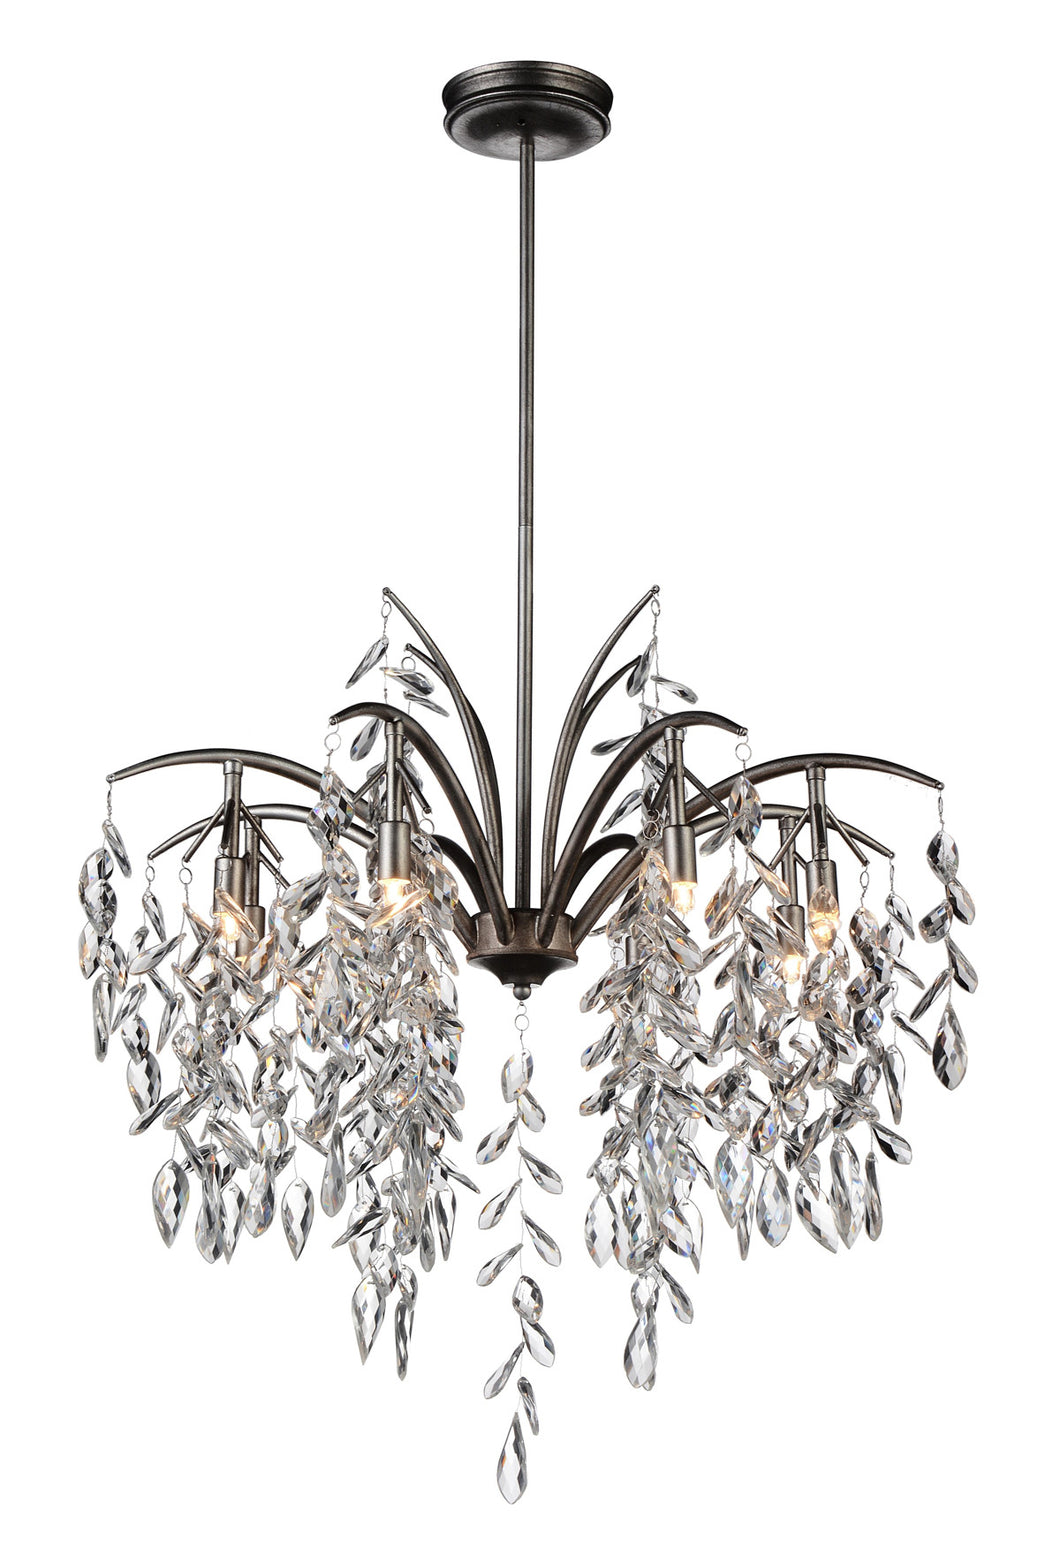 8 Light Down Chandelier with Silver Mist finish